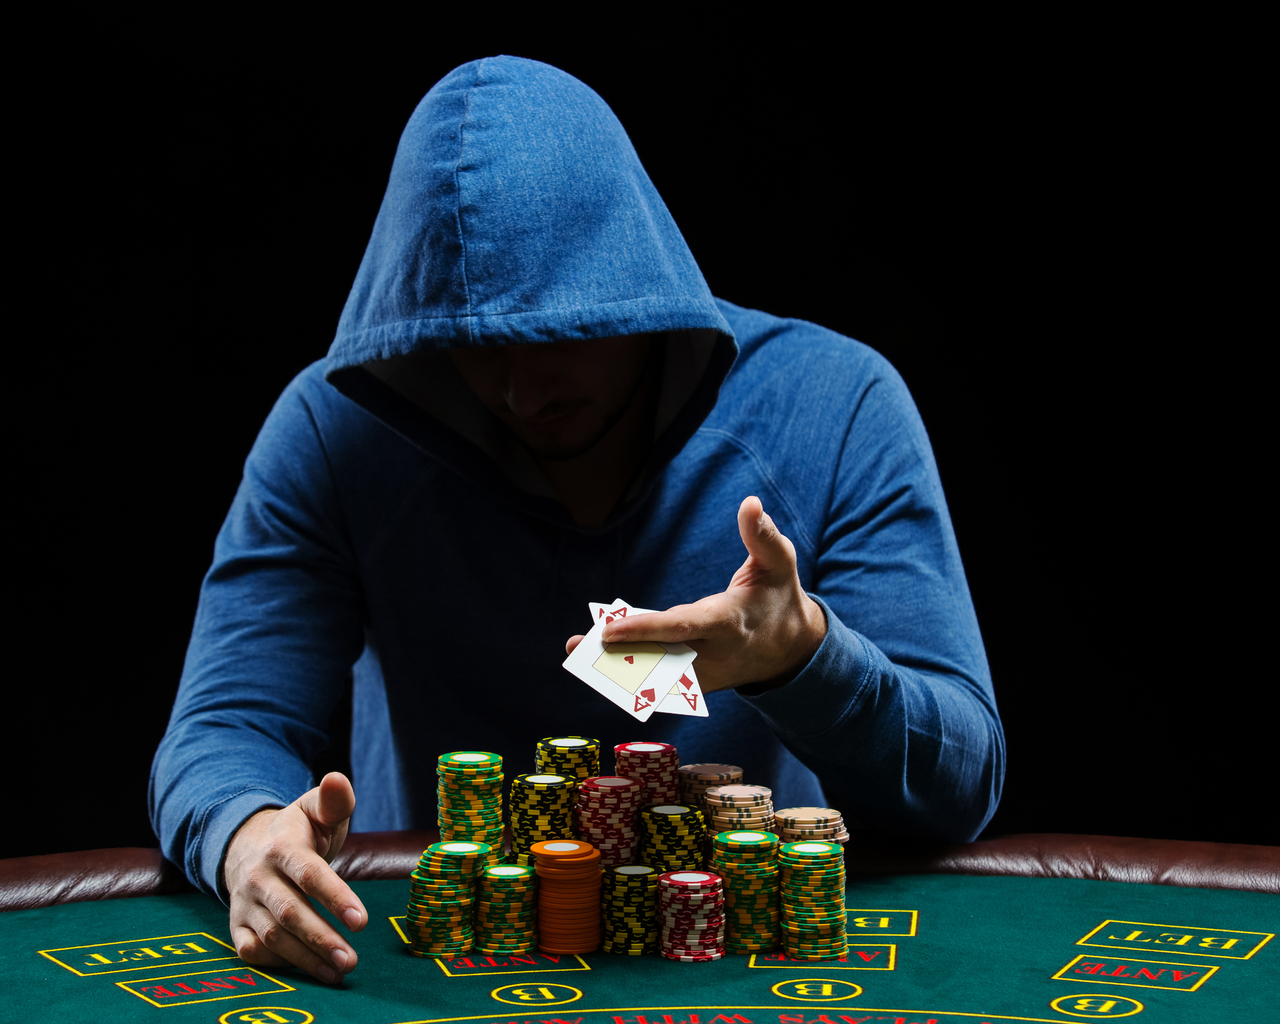 poker-player-5k-cz.jpg